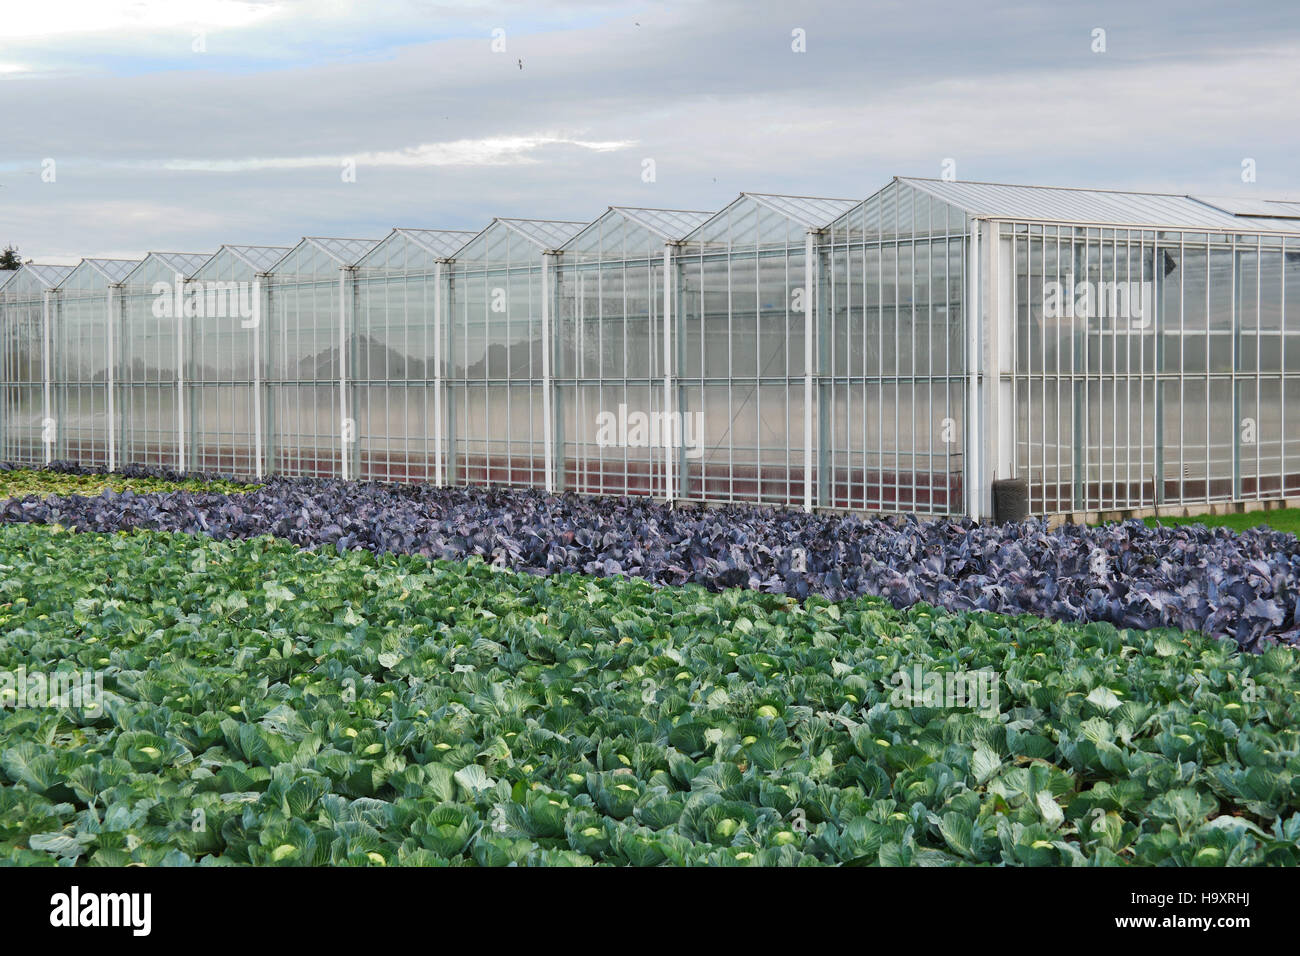 White and red headed cabbage Field in front of greenhouses in The Netherlands. - Stock Image